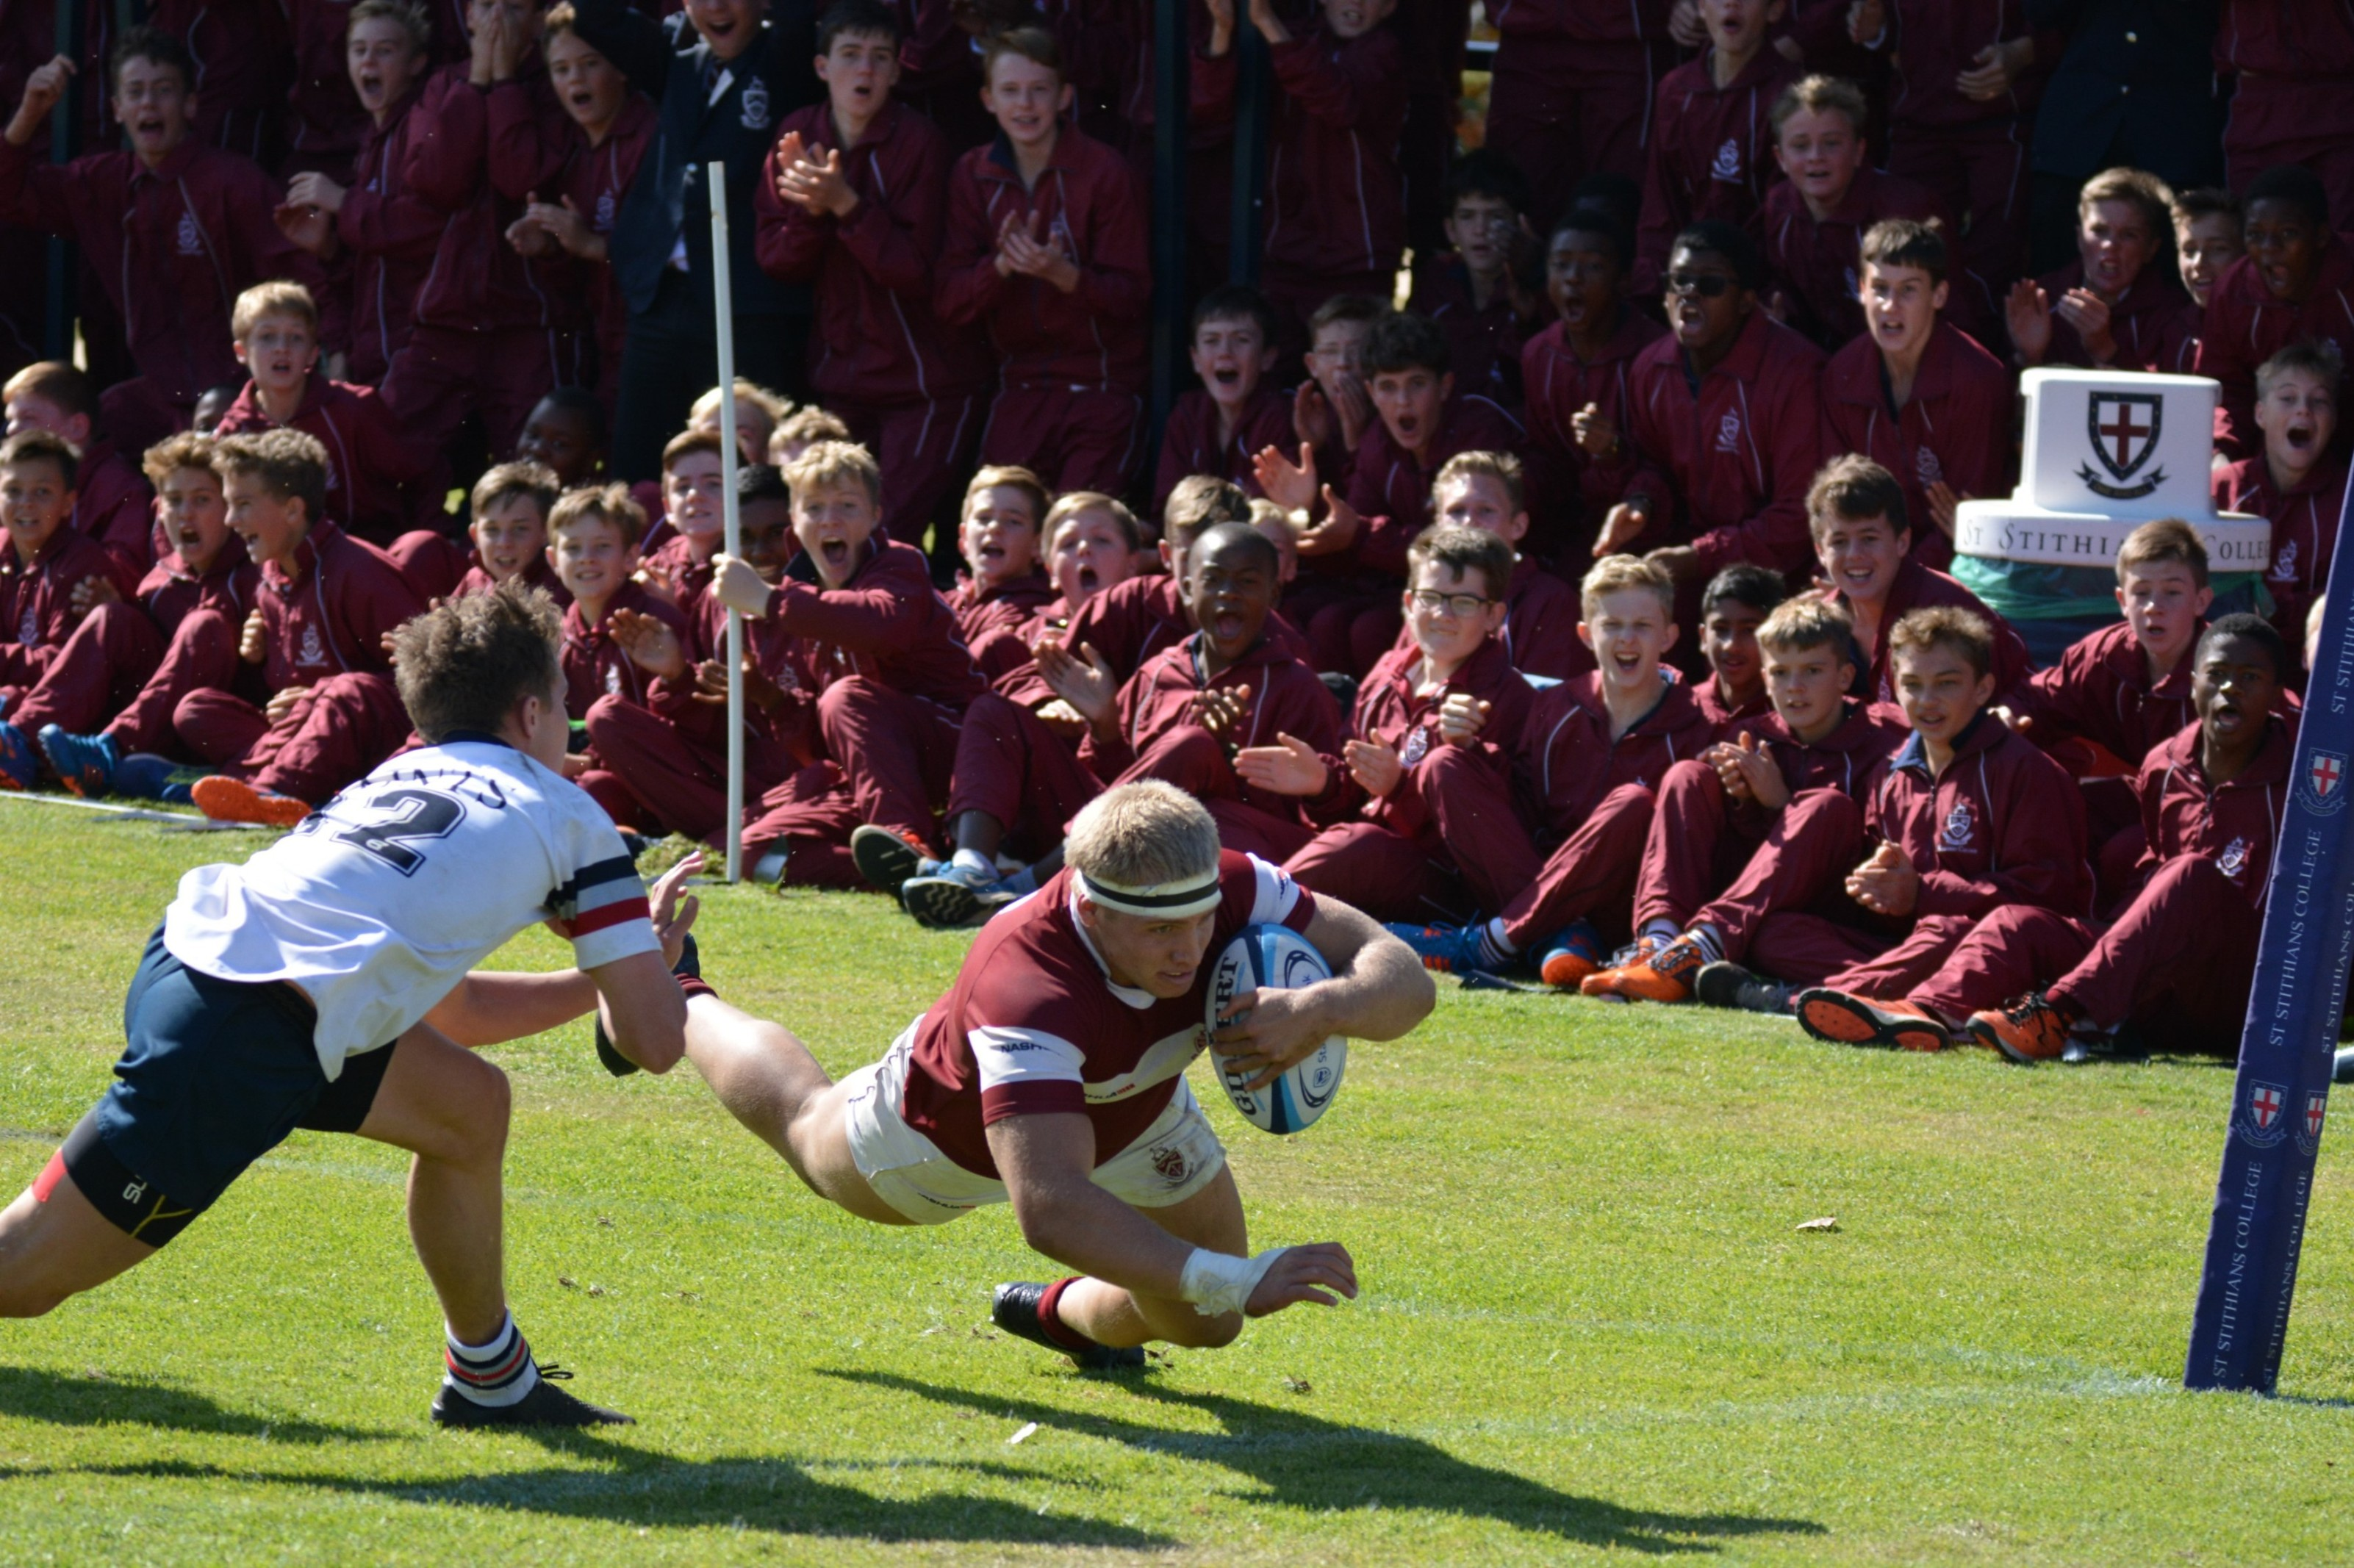 Rugby ' Kearsney's Dylan Richardson in the win against St Stithians